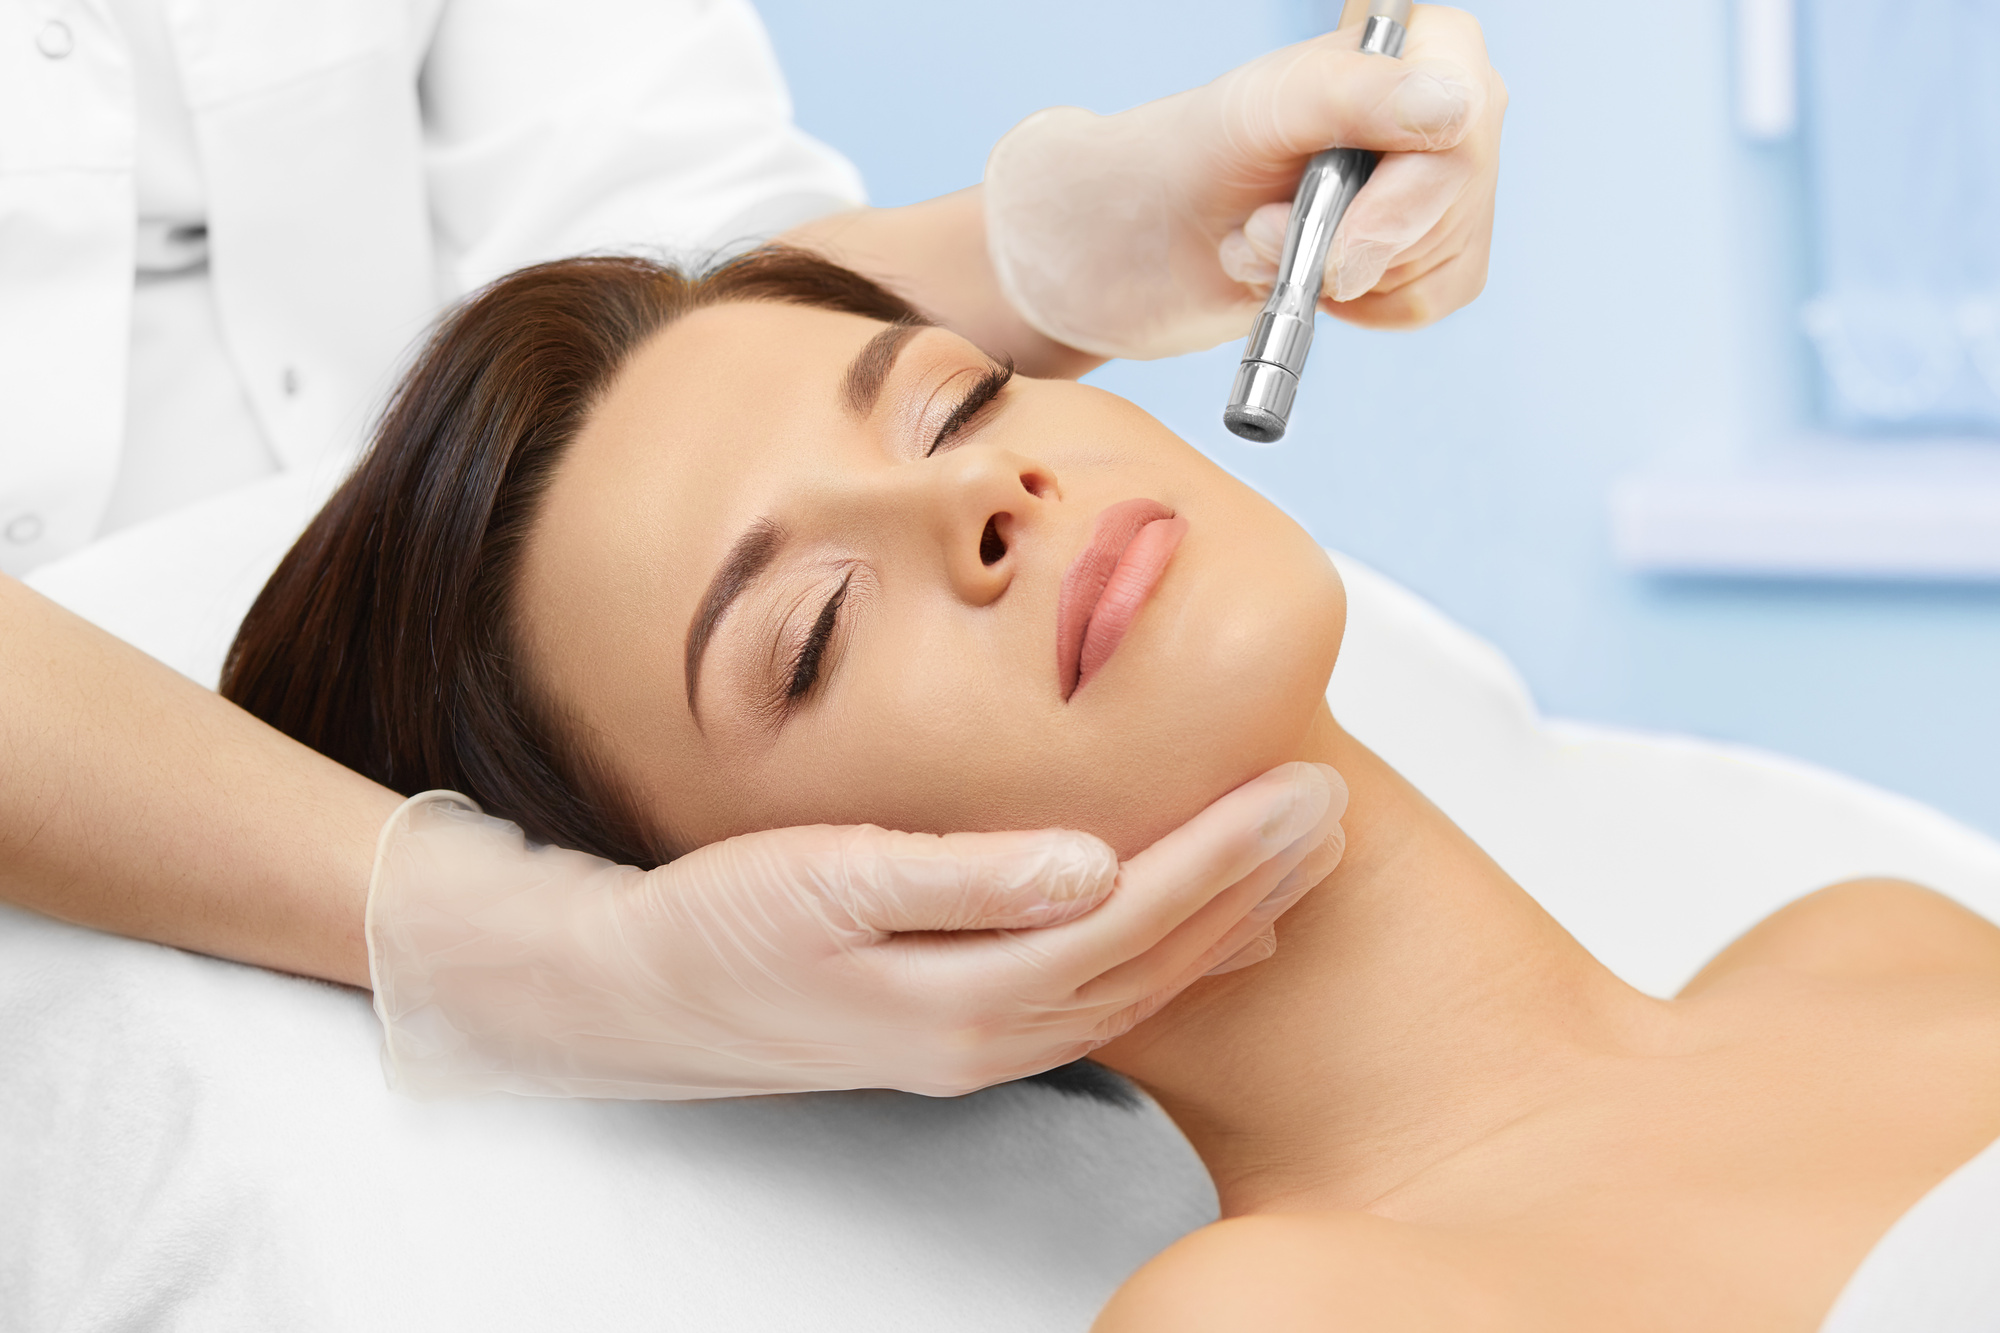 Nonsurgical treatments for achieving a younger-looking skin in the 21st-century